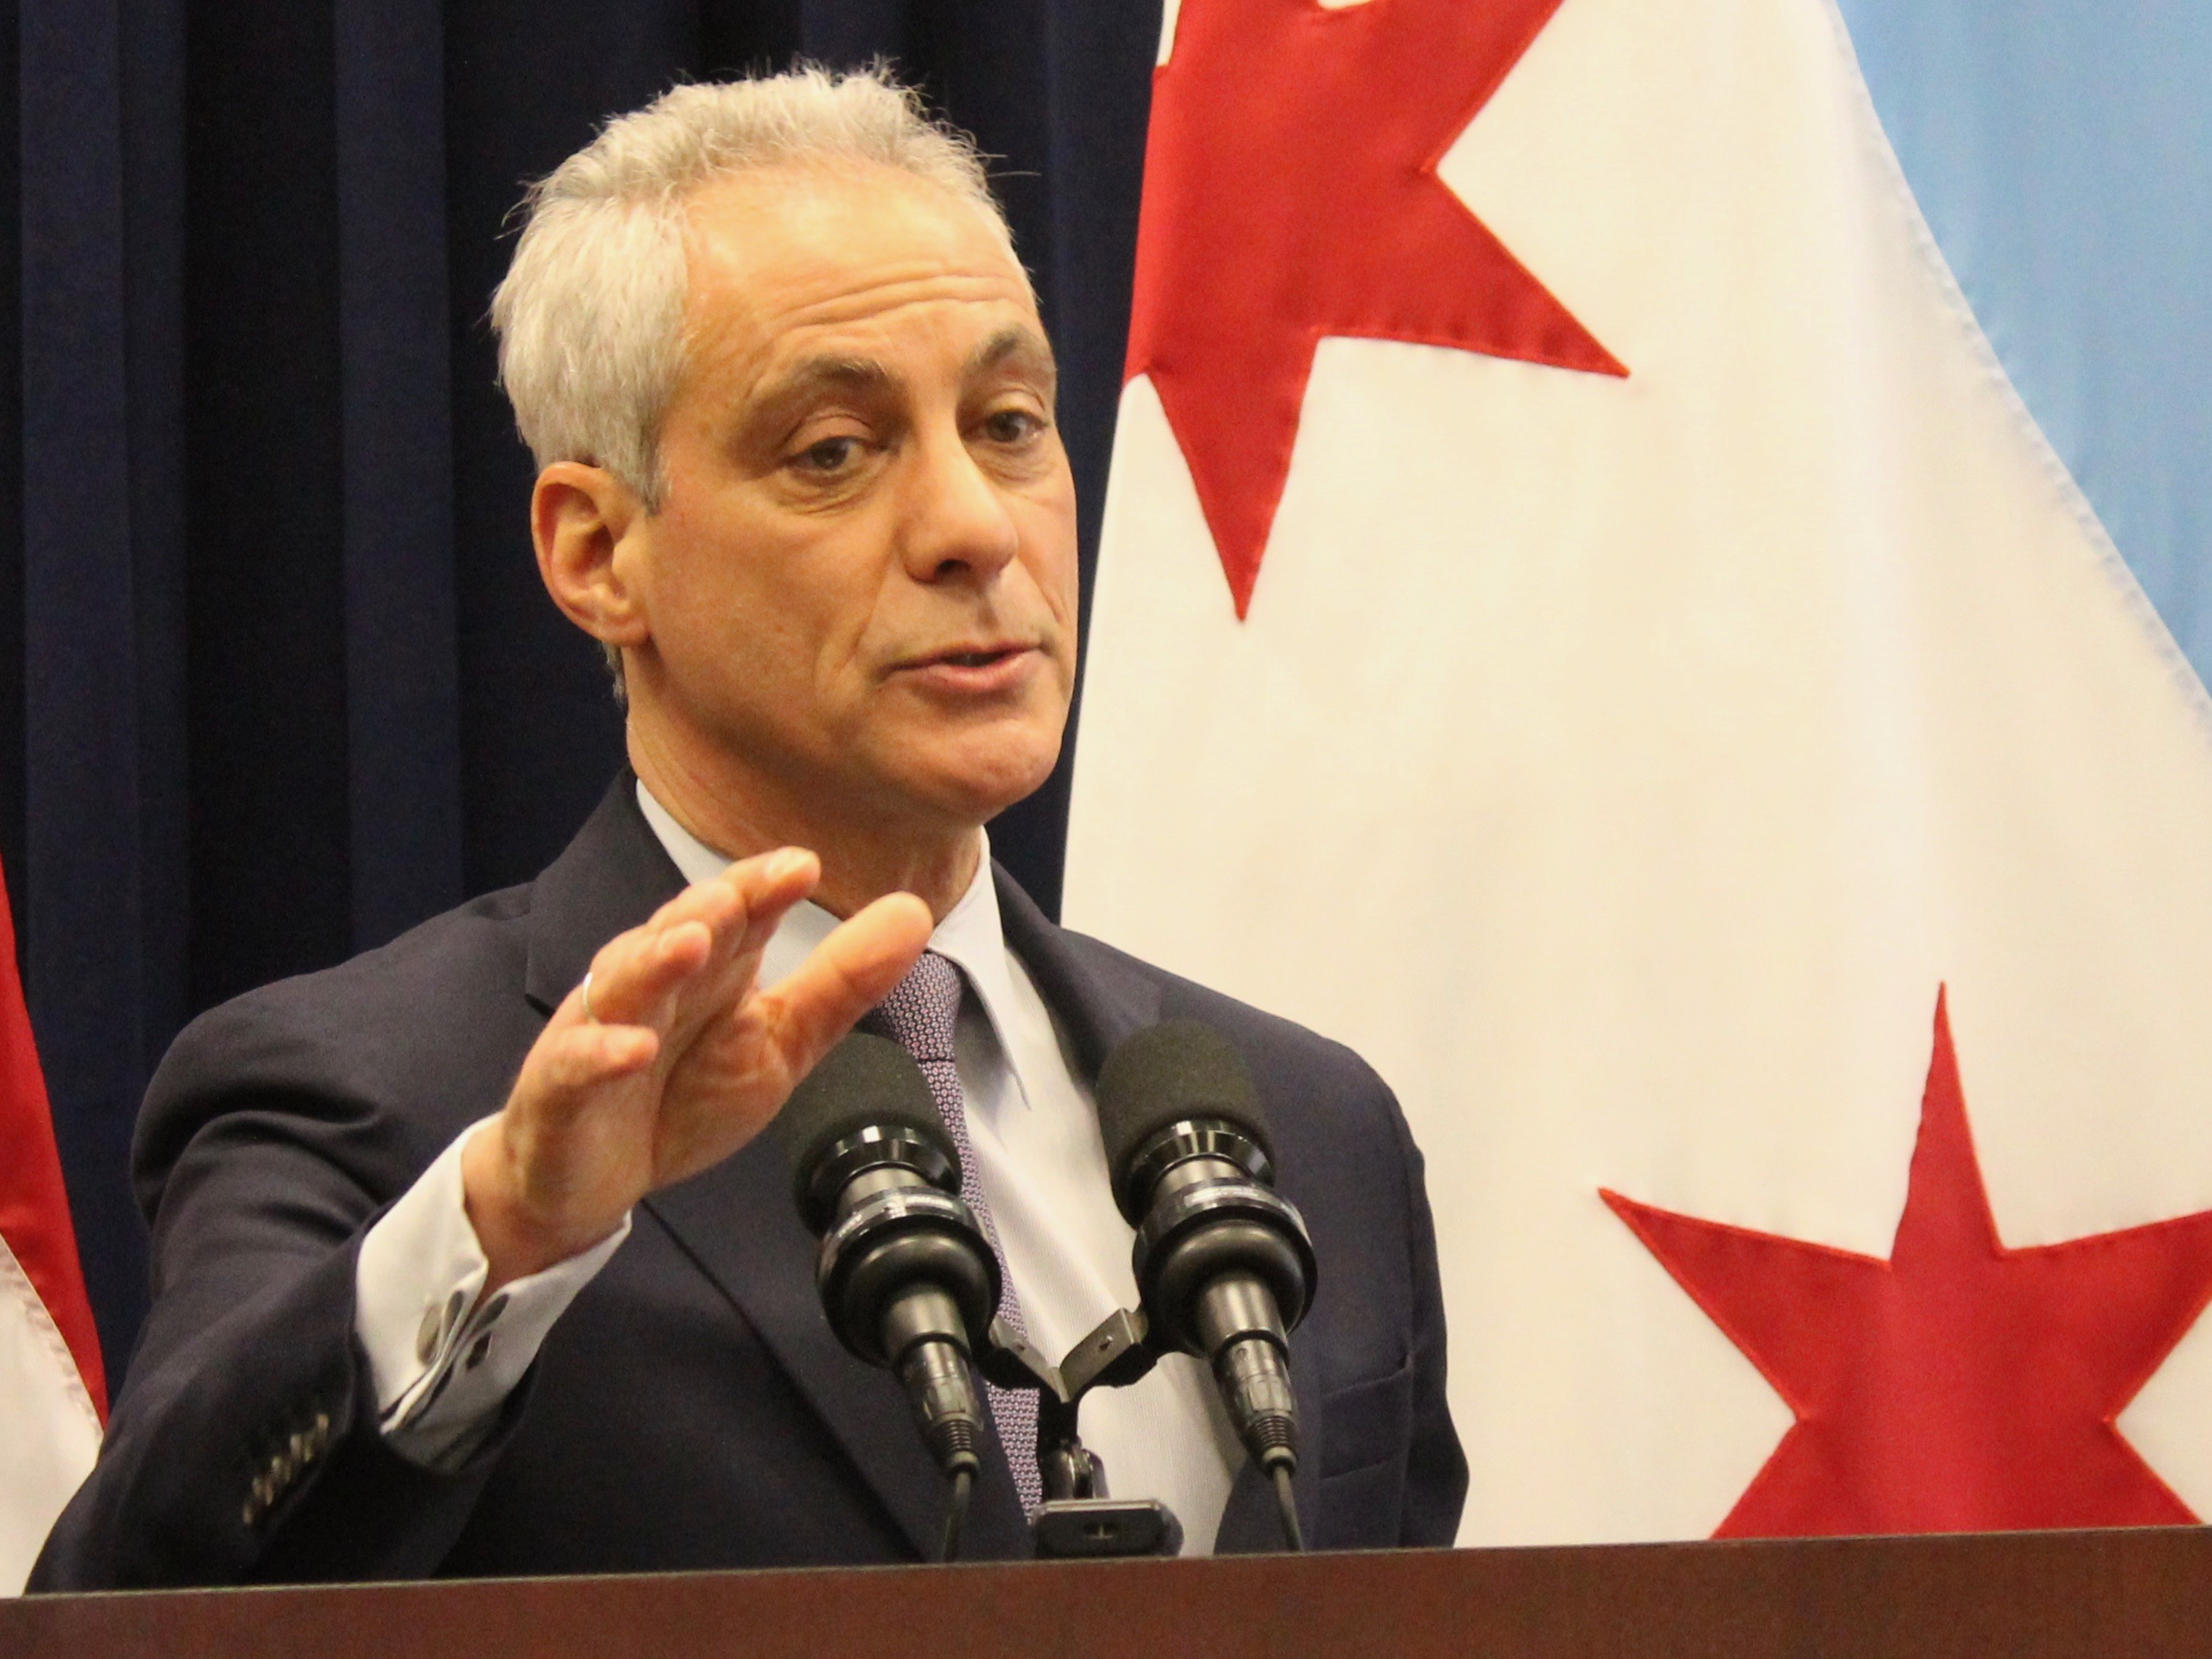 """""""These contributions must be made. There are no ifs, ands, or buts about it. That is not just my opinion. That is the law."""" - Chicago Mayor Rahm Emanuel on pensions (One Illinois/Ted Cox)"""